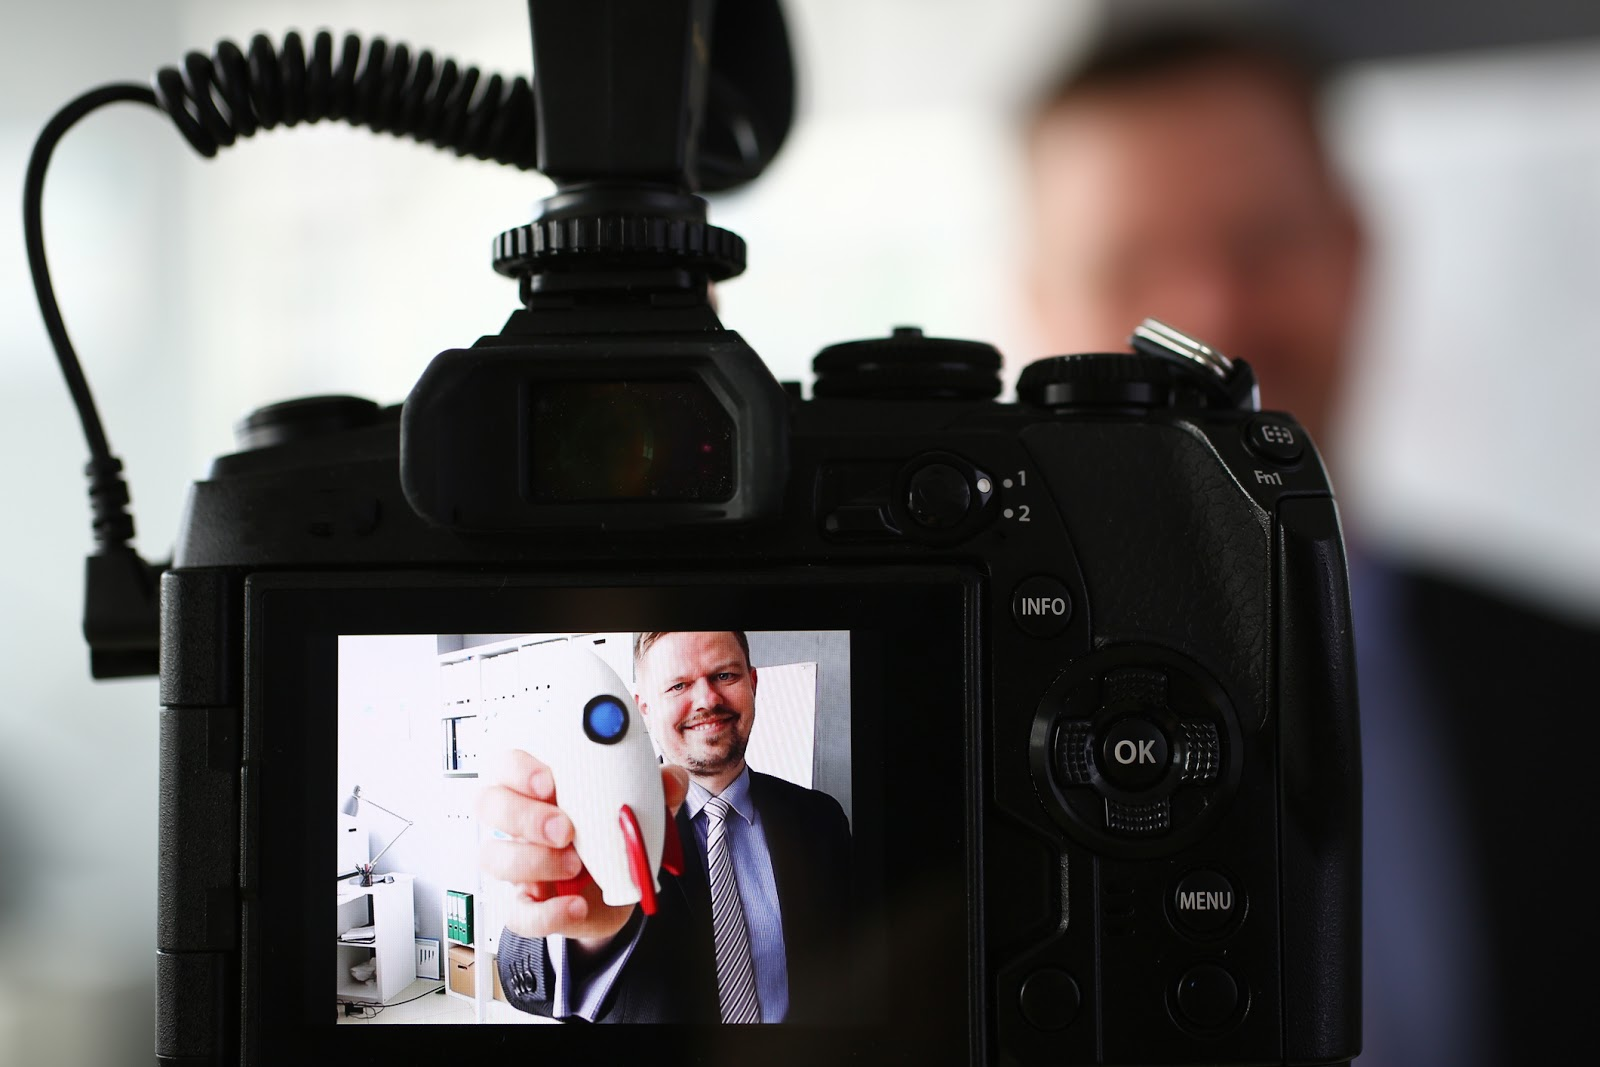 man on video camera with prop